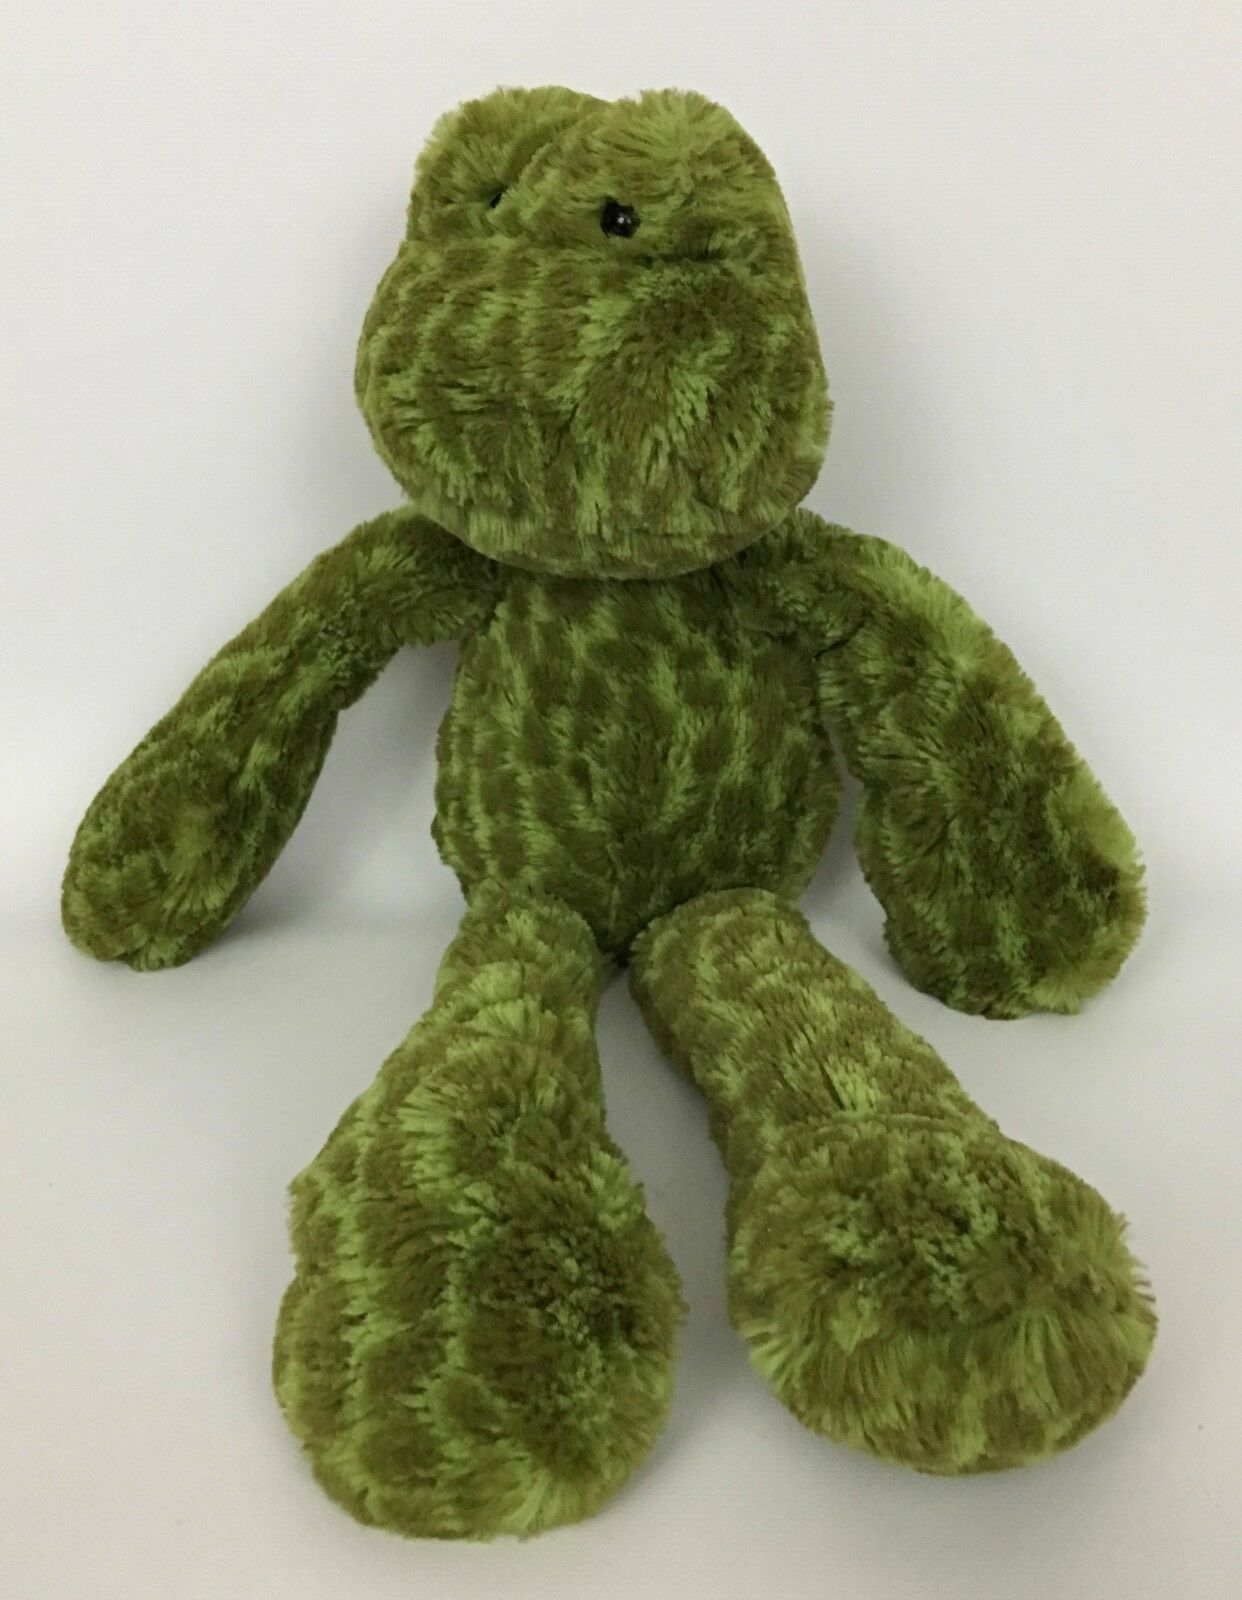 Jellycat Merryday Frog Grün Spotted Stuffed Animal Plush READ